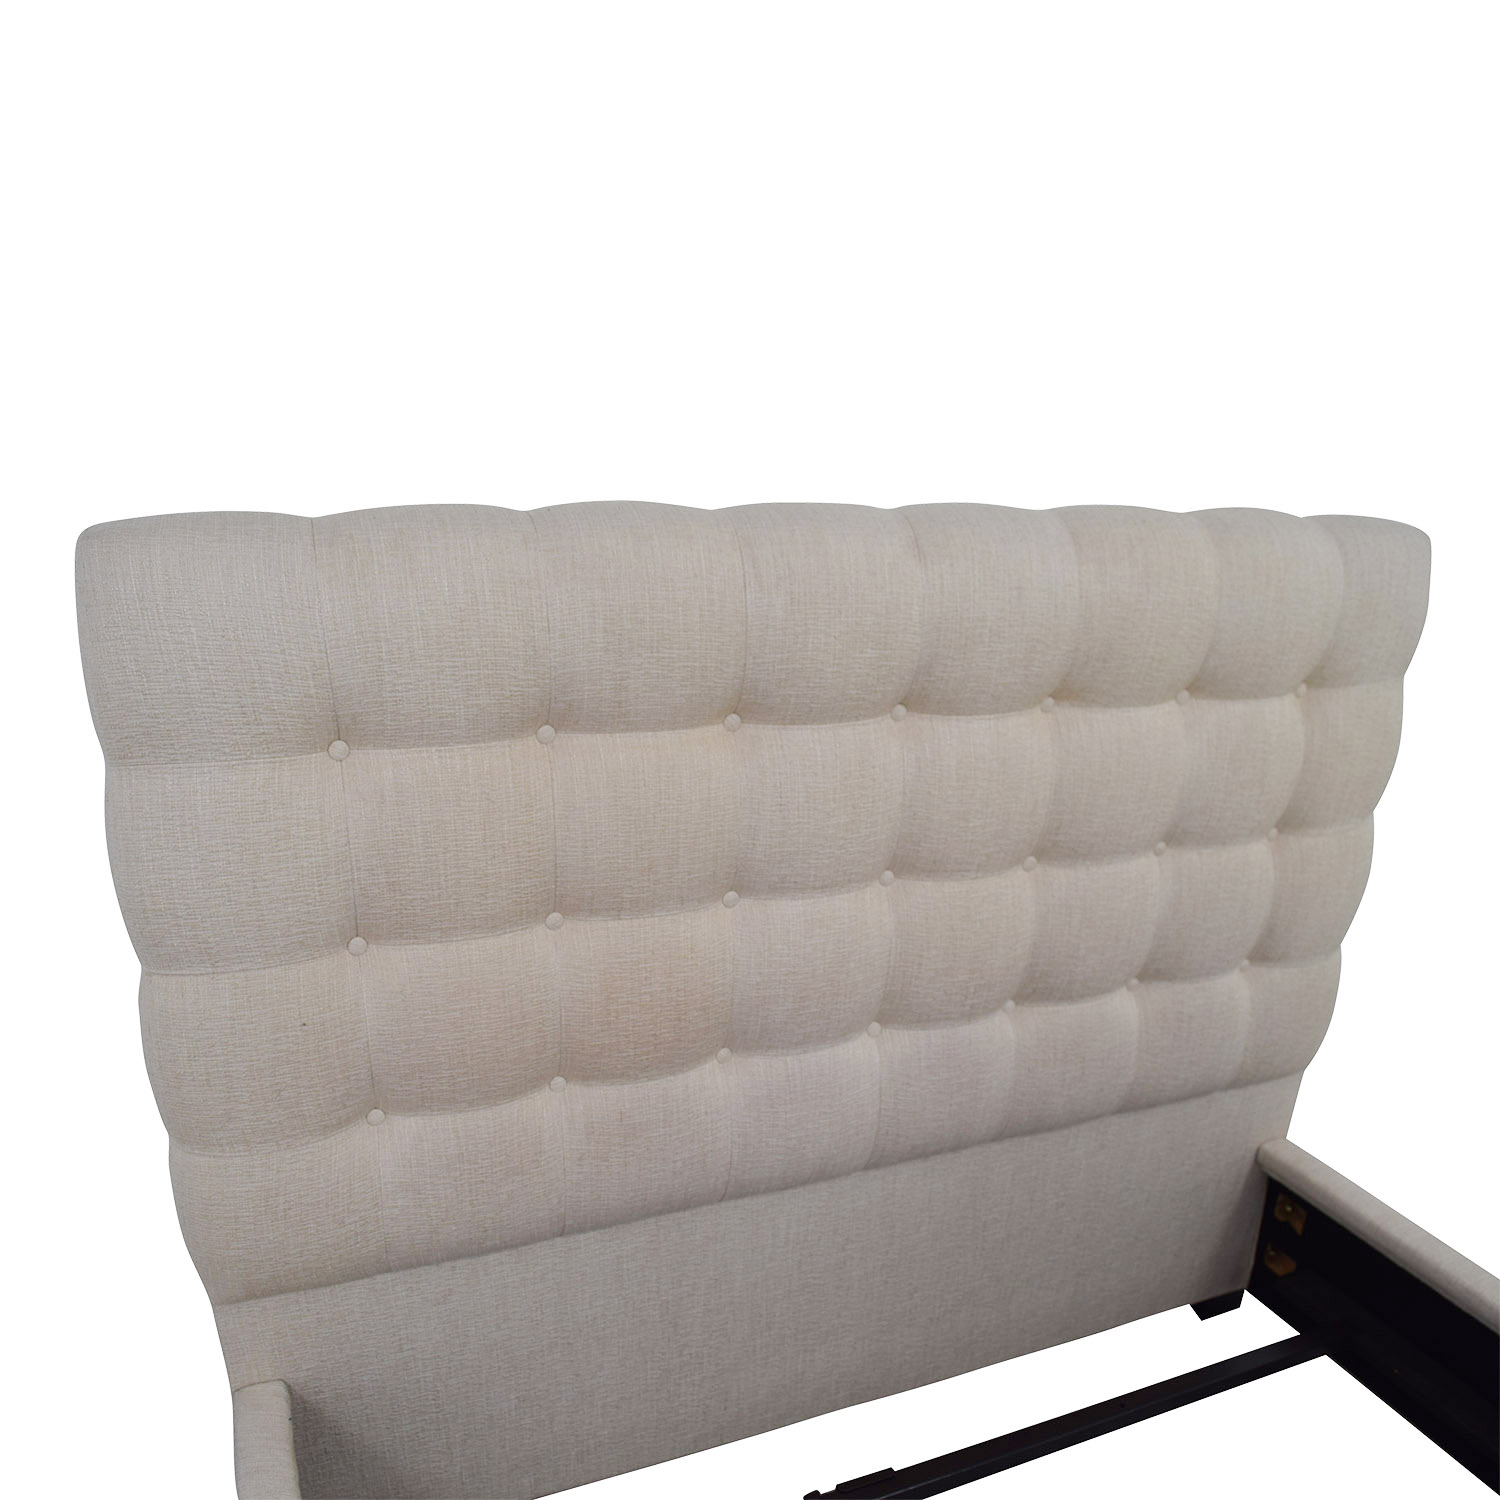 shop Raymour & Flanigan Raymour & Flanigan Beige Tufted Contemporary Dana Queen Bed Frame online